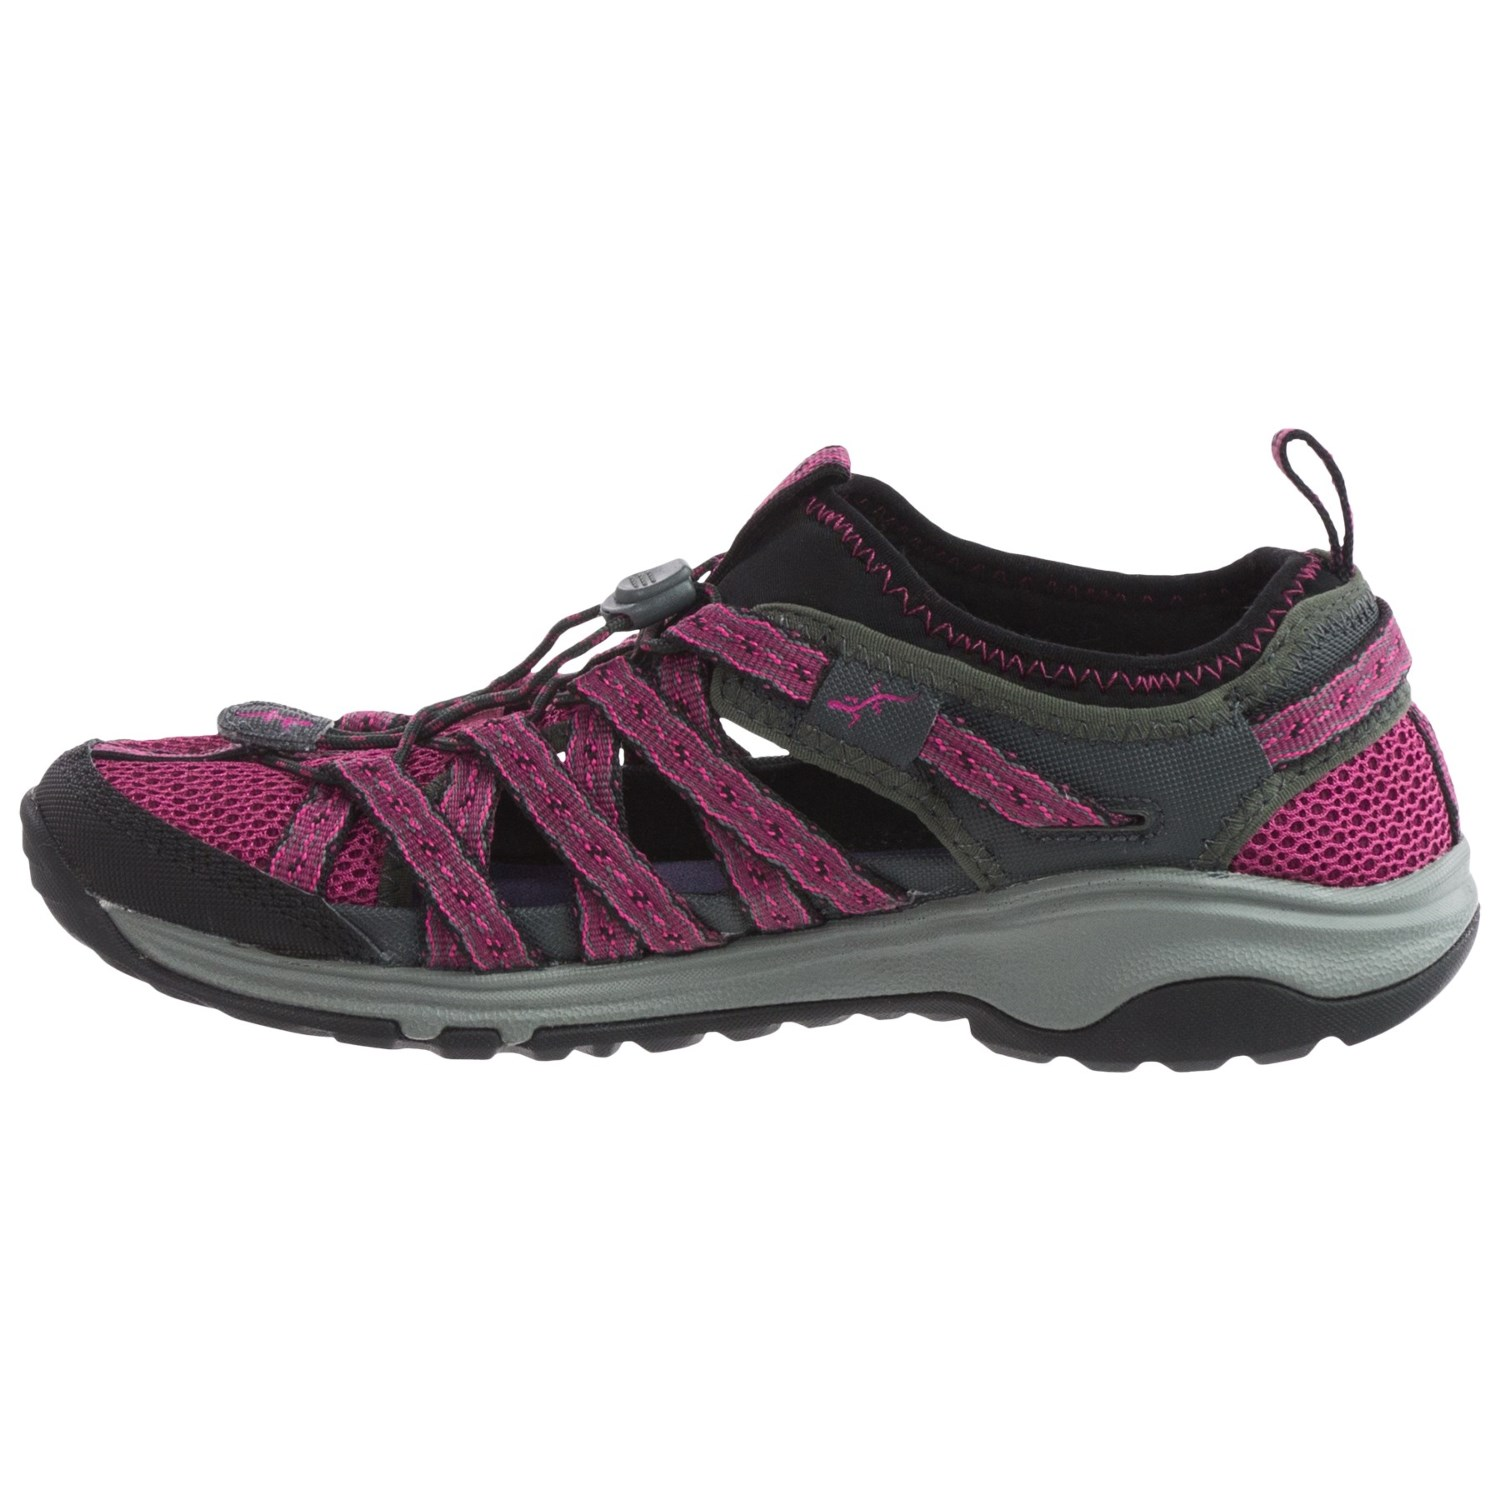 Chaco Outcross Evo 1 Water Shoes For Women Save 45